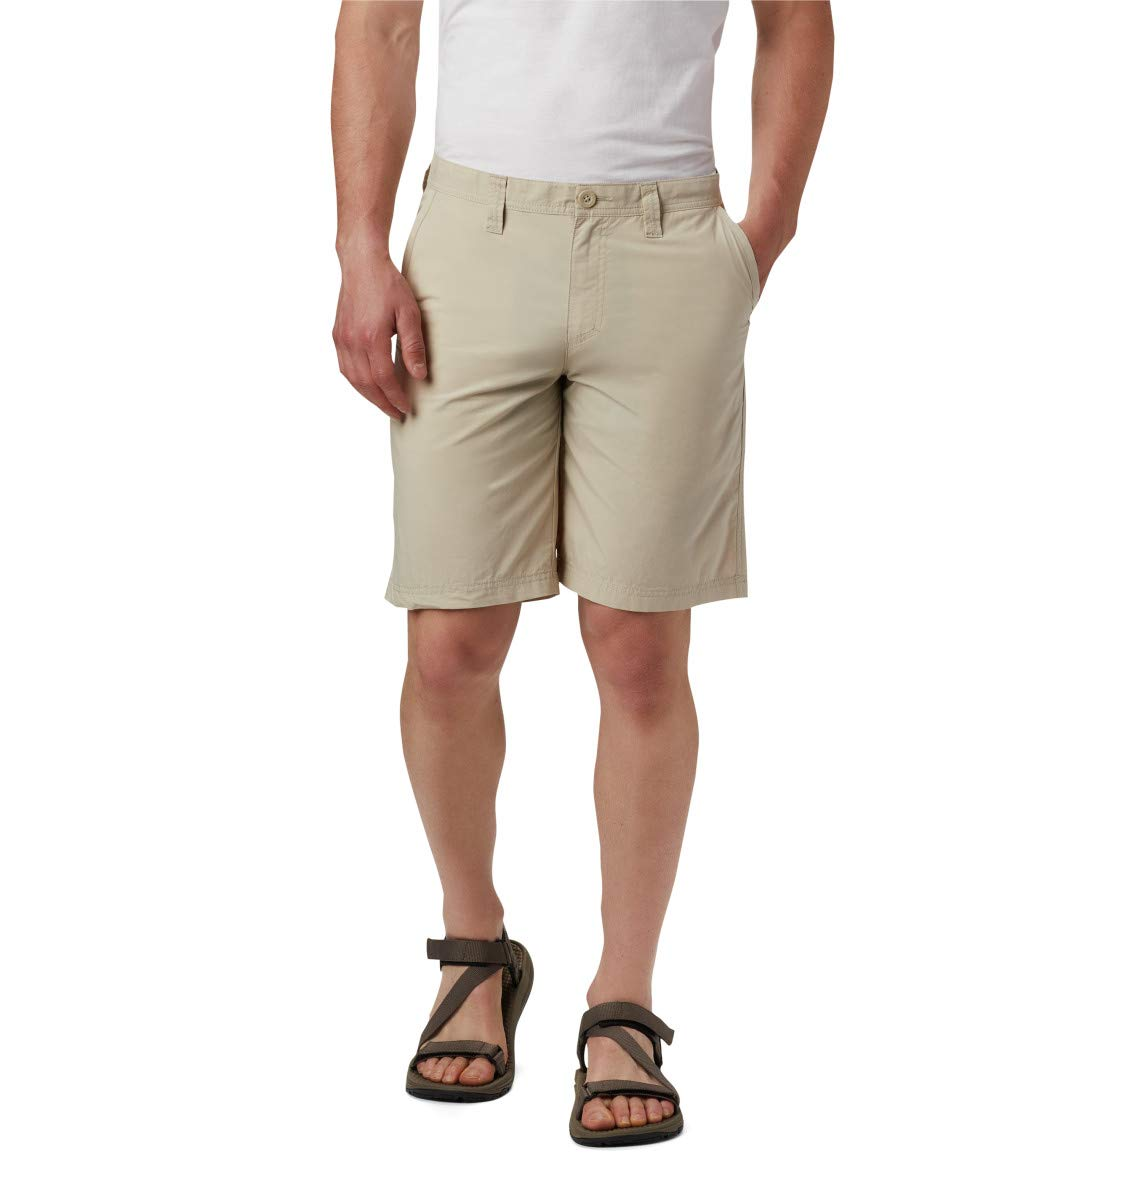 Columbia Big and Tall Men's Washed Out Chino Short, Fossil, 36x10 by Columbia